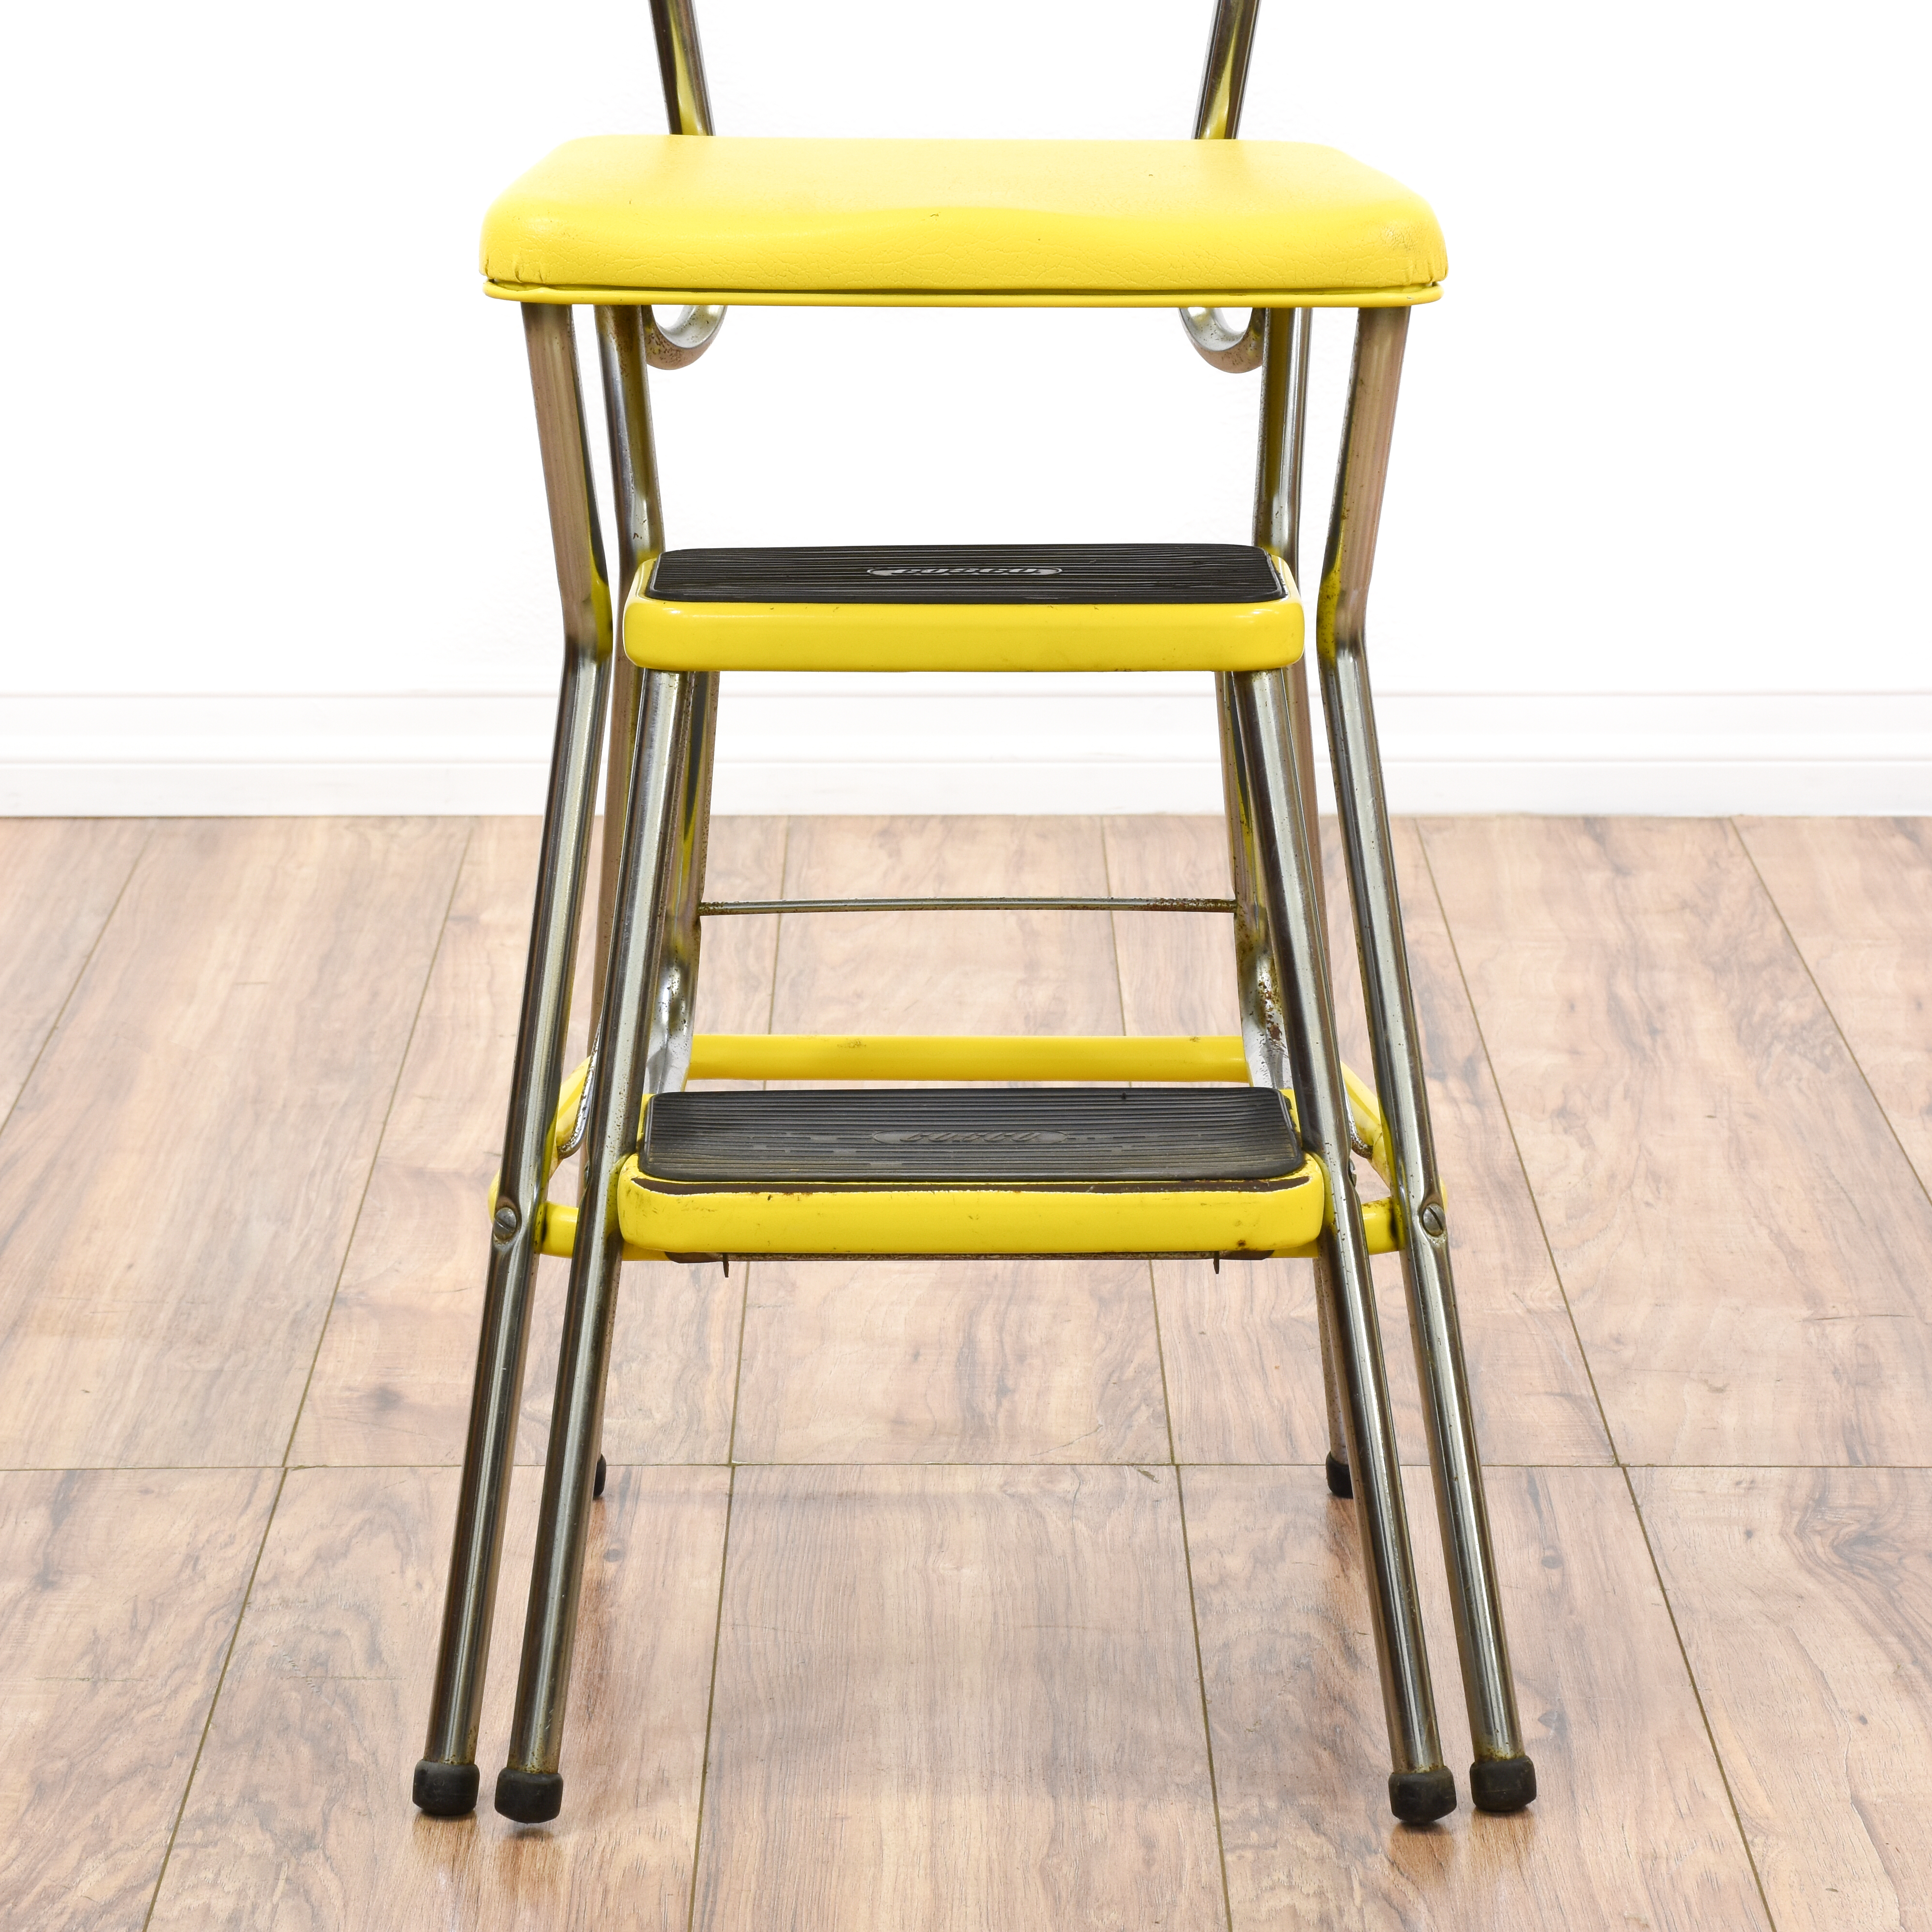 old fashioned kitchen chair step stool delta sinks mid century modern yellow quotcosco quot loveseat